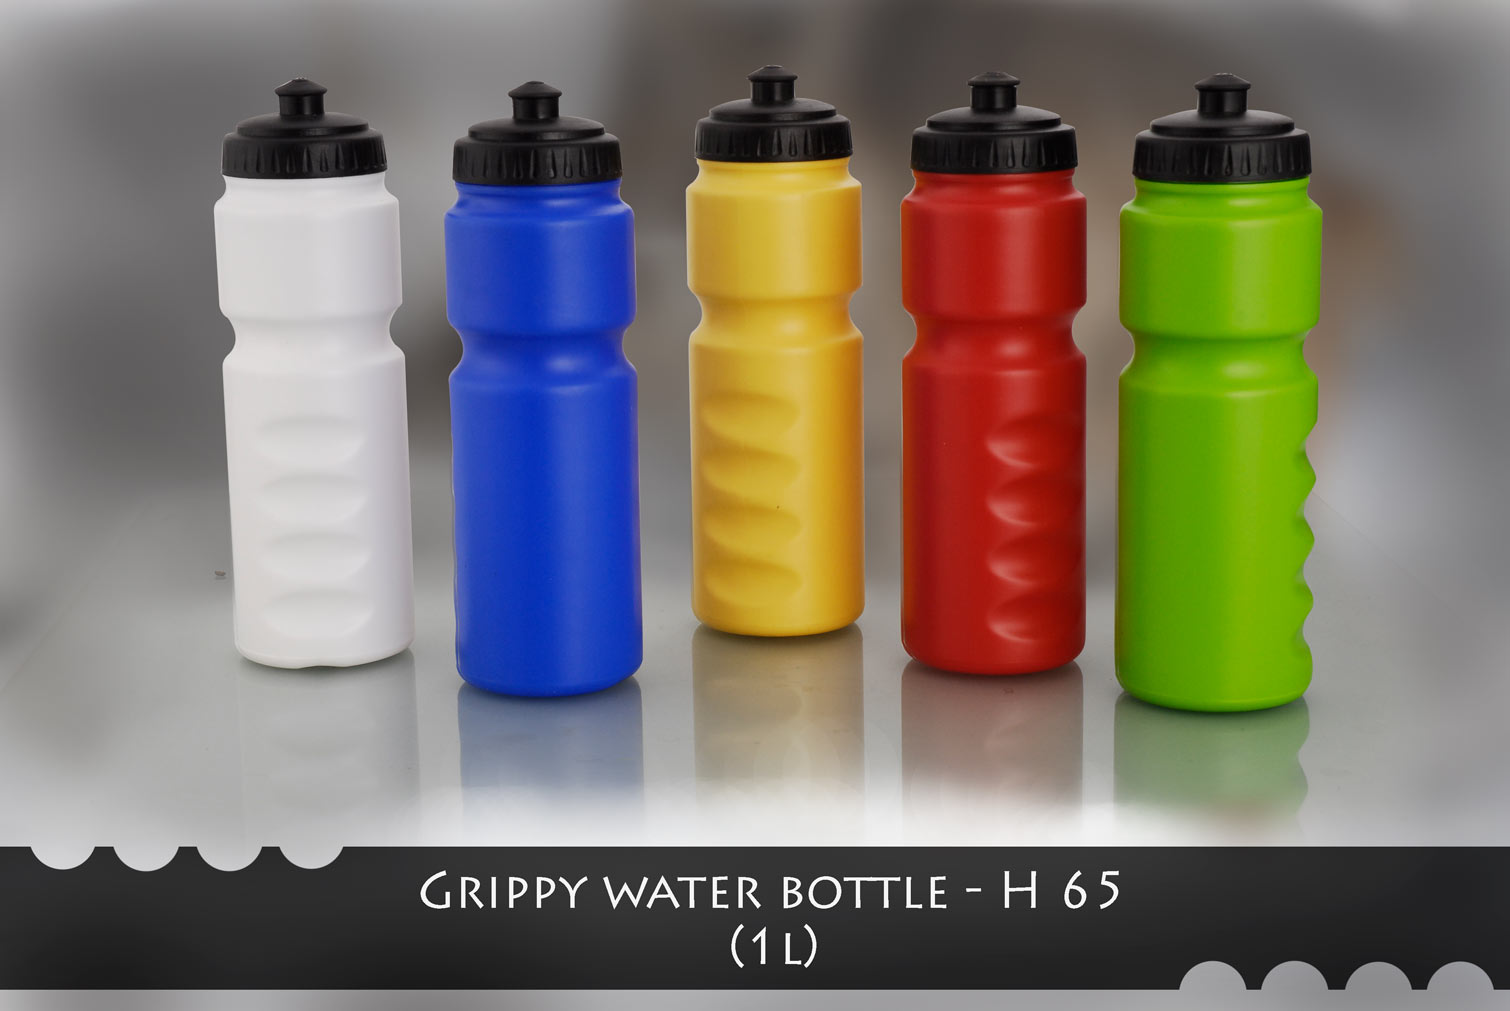 H65 - Grippy water bottle (1000 ml)